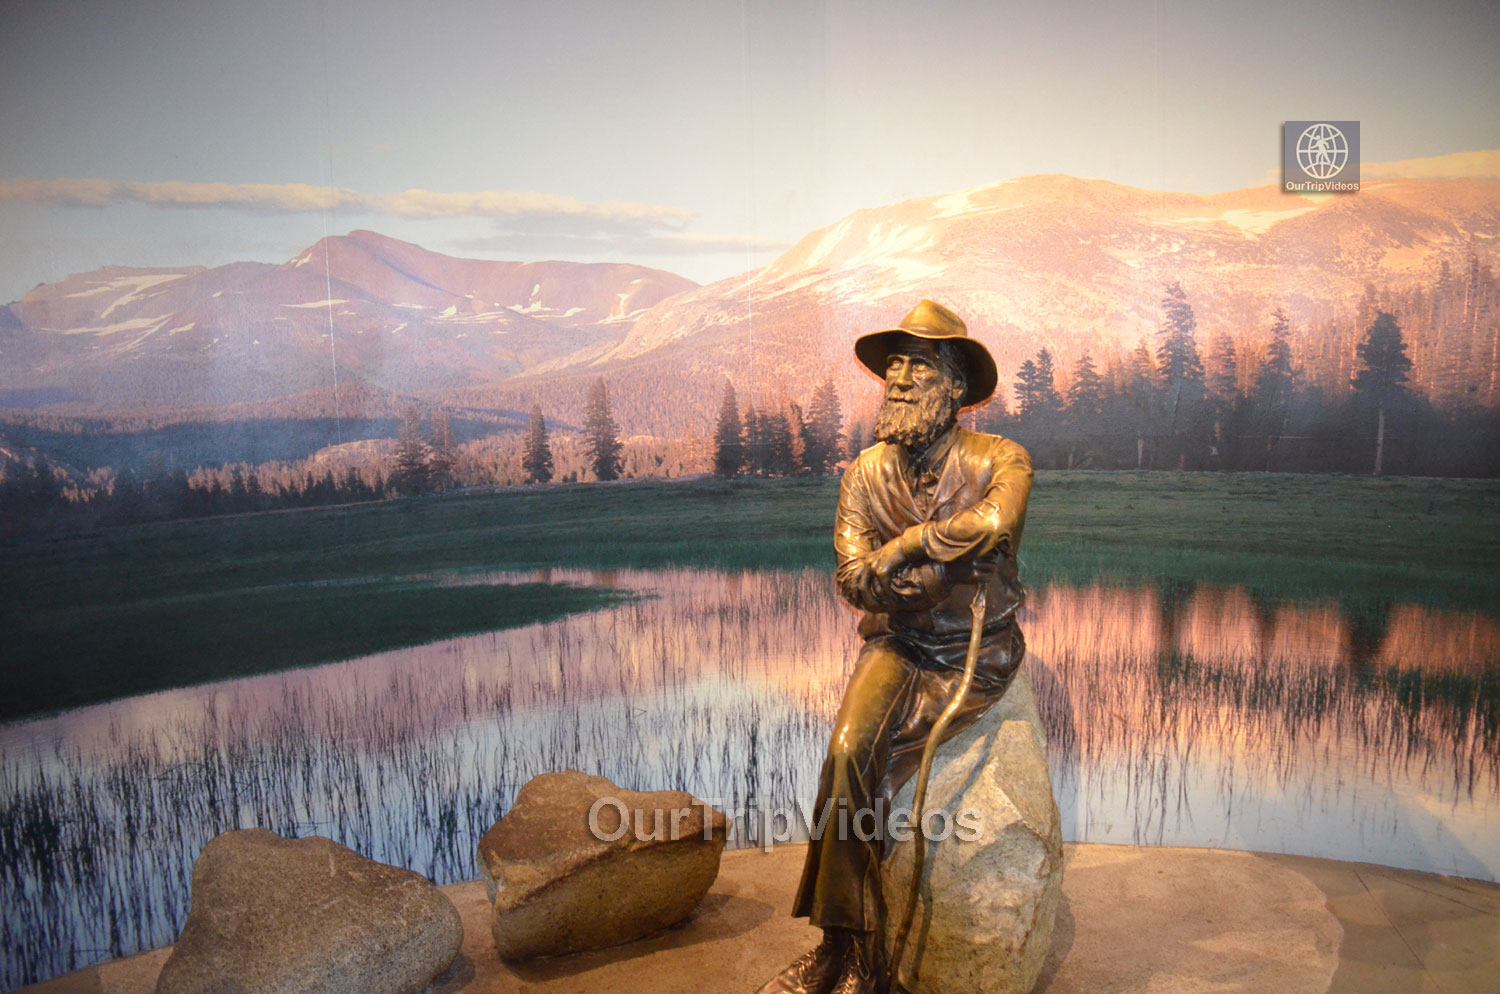 Yosemite National Park - Valley Visitor Center, Yosemite Valley, CA, USA - Picture 25 of 25